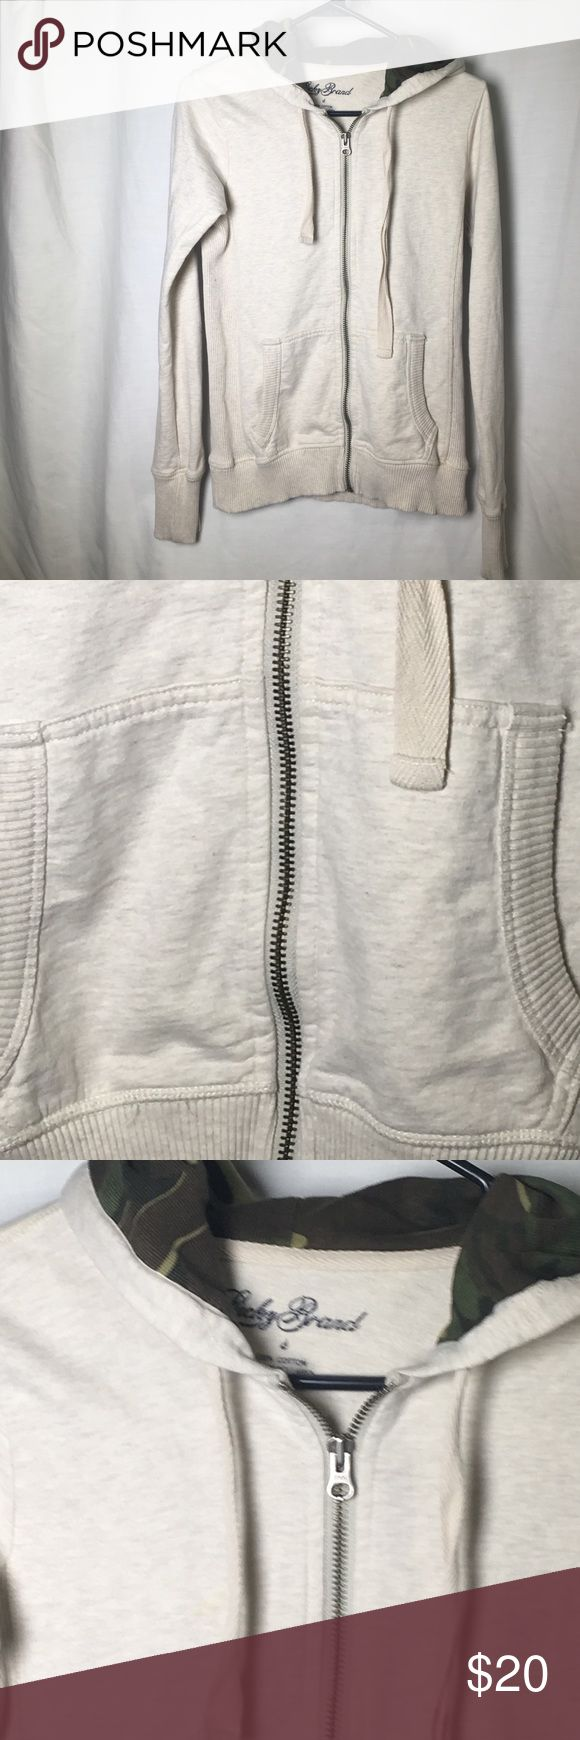 Women's lucky brand zip up hoodie jacket Lucky brand zip up hoodie jacket. With drawstring pull to tighten hood. The jAcket is a light beige color and the inside of the hood is camo green design. Size small. Lucky Brand Jackets & Coats